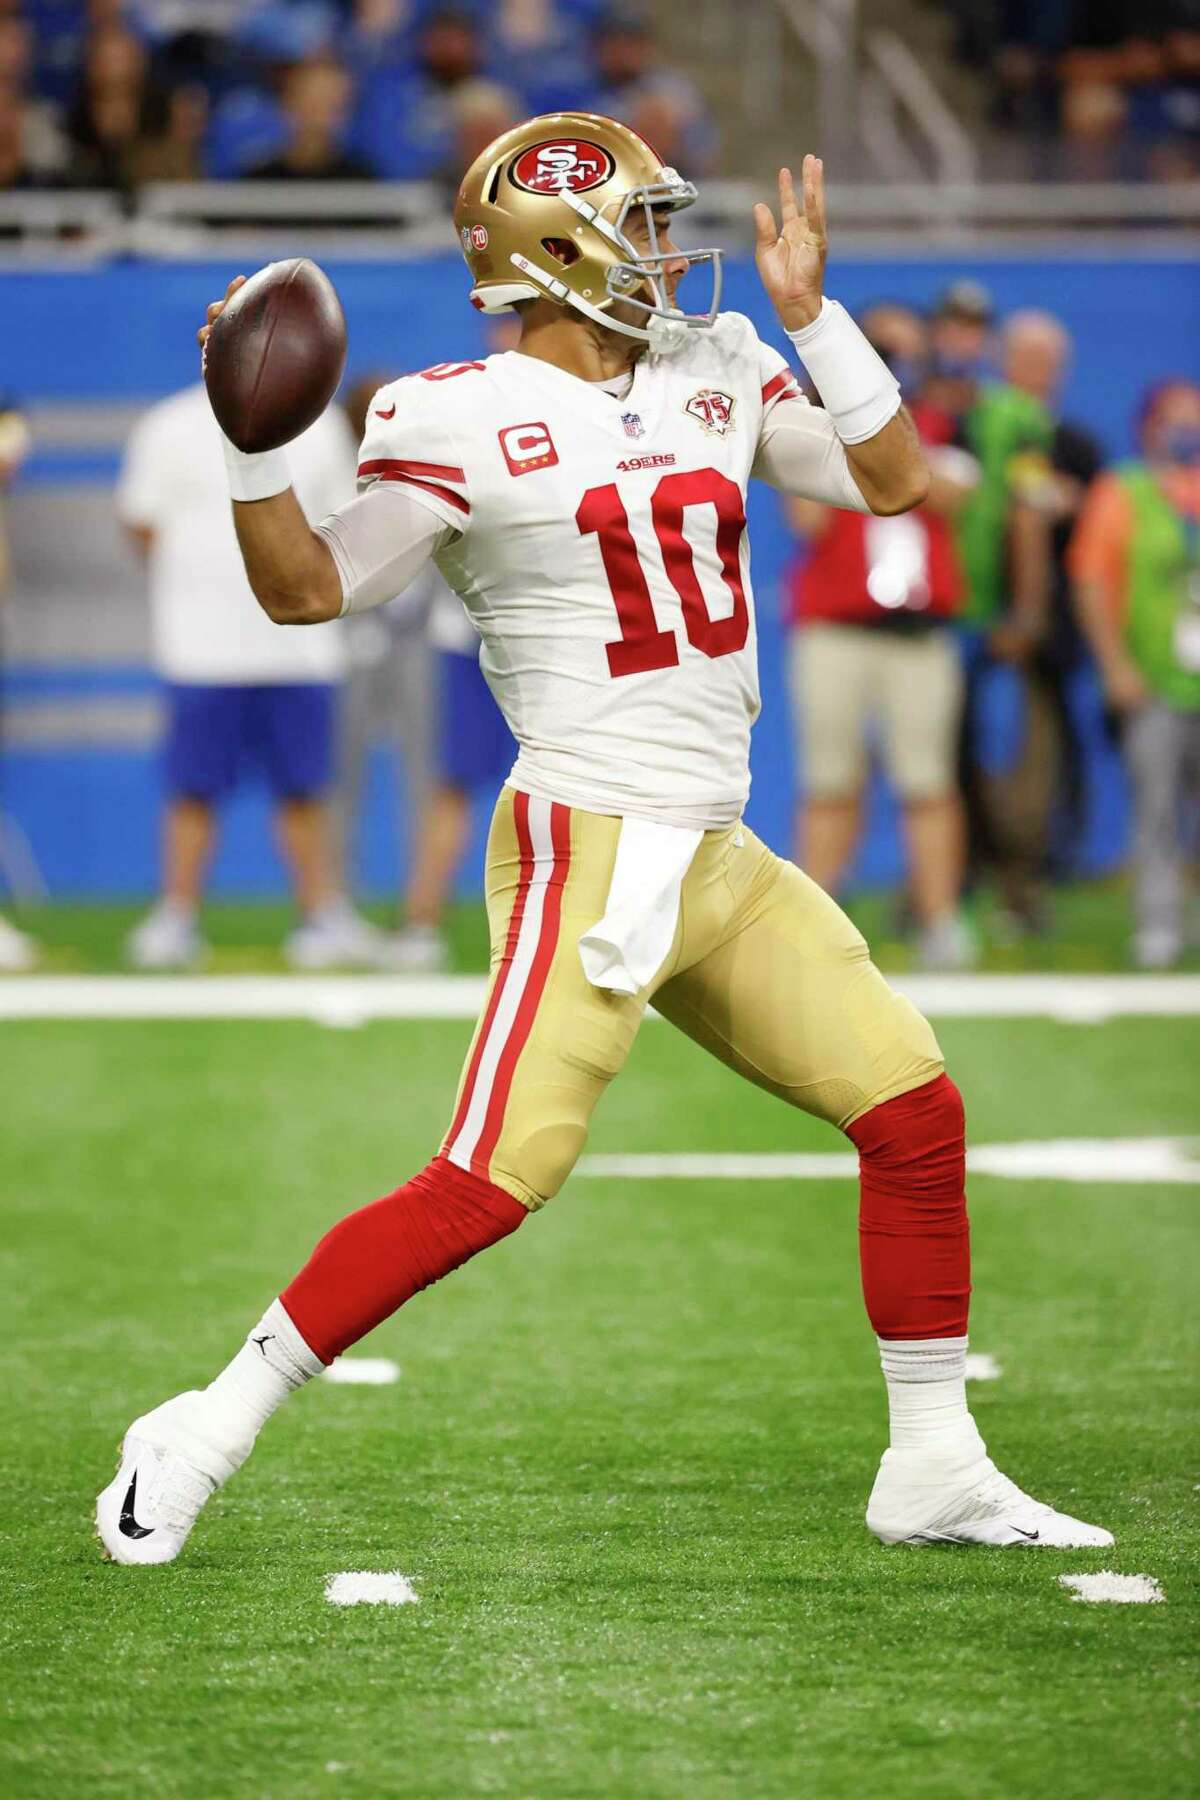 San Francisco 49ers quarterback Jimmy Garoppolo (10) passes in the first half against the Detroit Lions during an NFL football game, Sunday, Sept. 12, 2021, in Detroit. (AP Photo/Rick Osentoski)